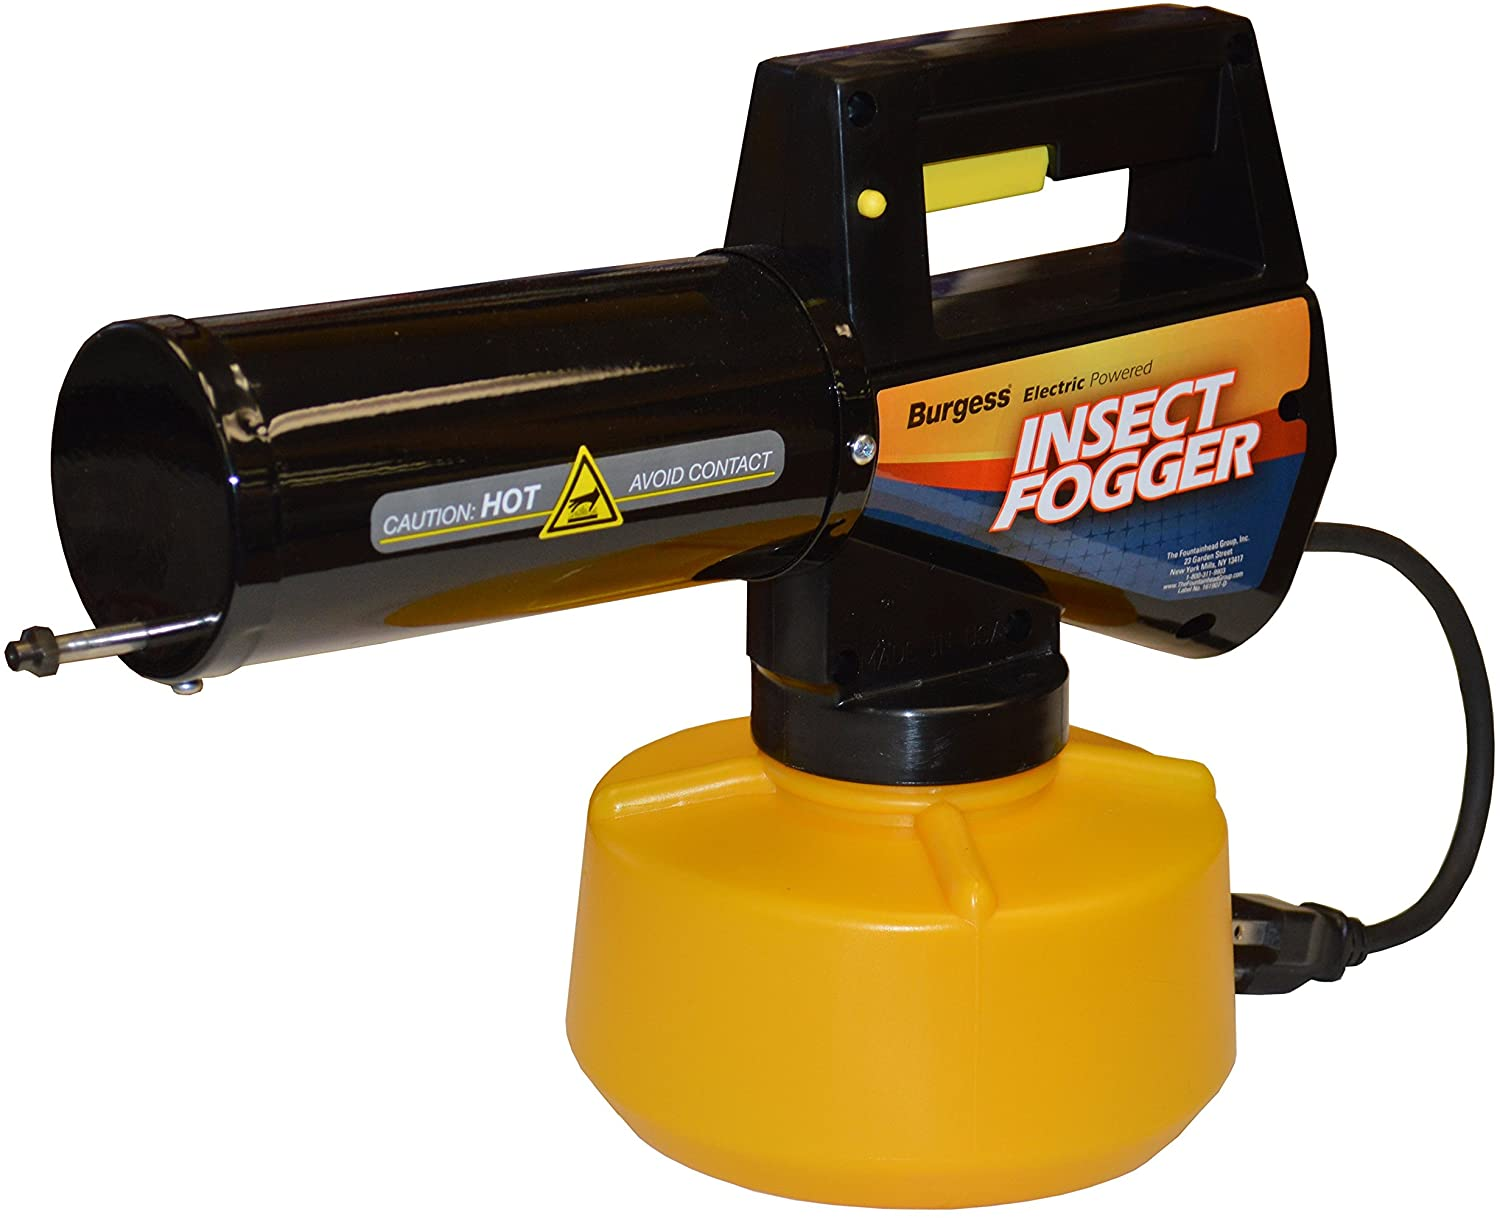 New mail order Burgess 960 Translated Electric Insect Fogger for Effective Fast and